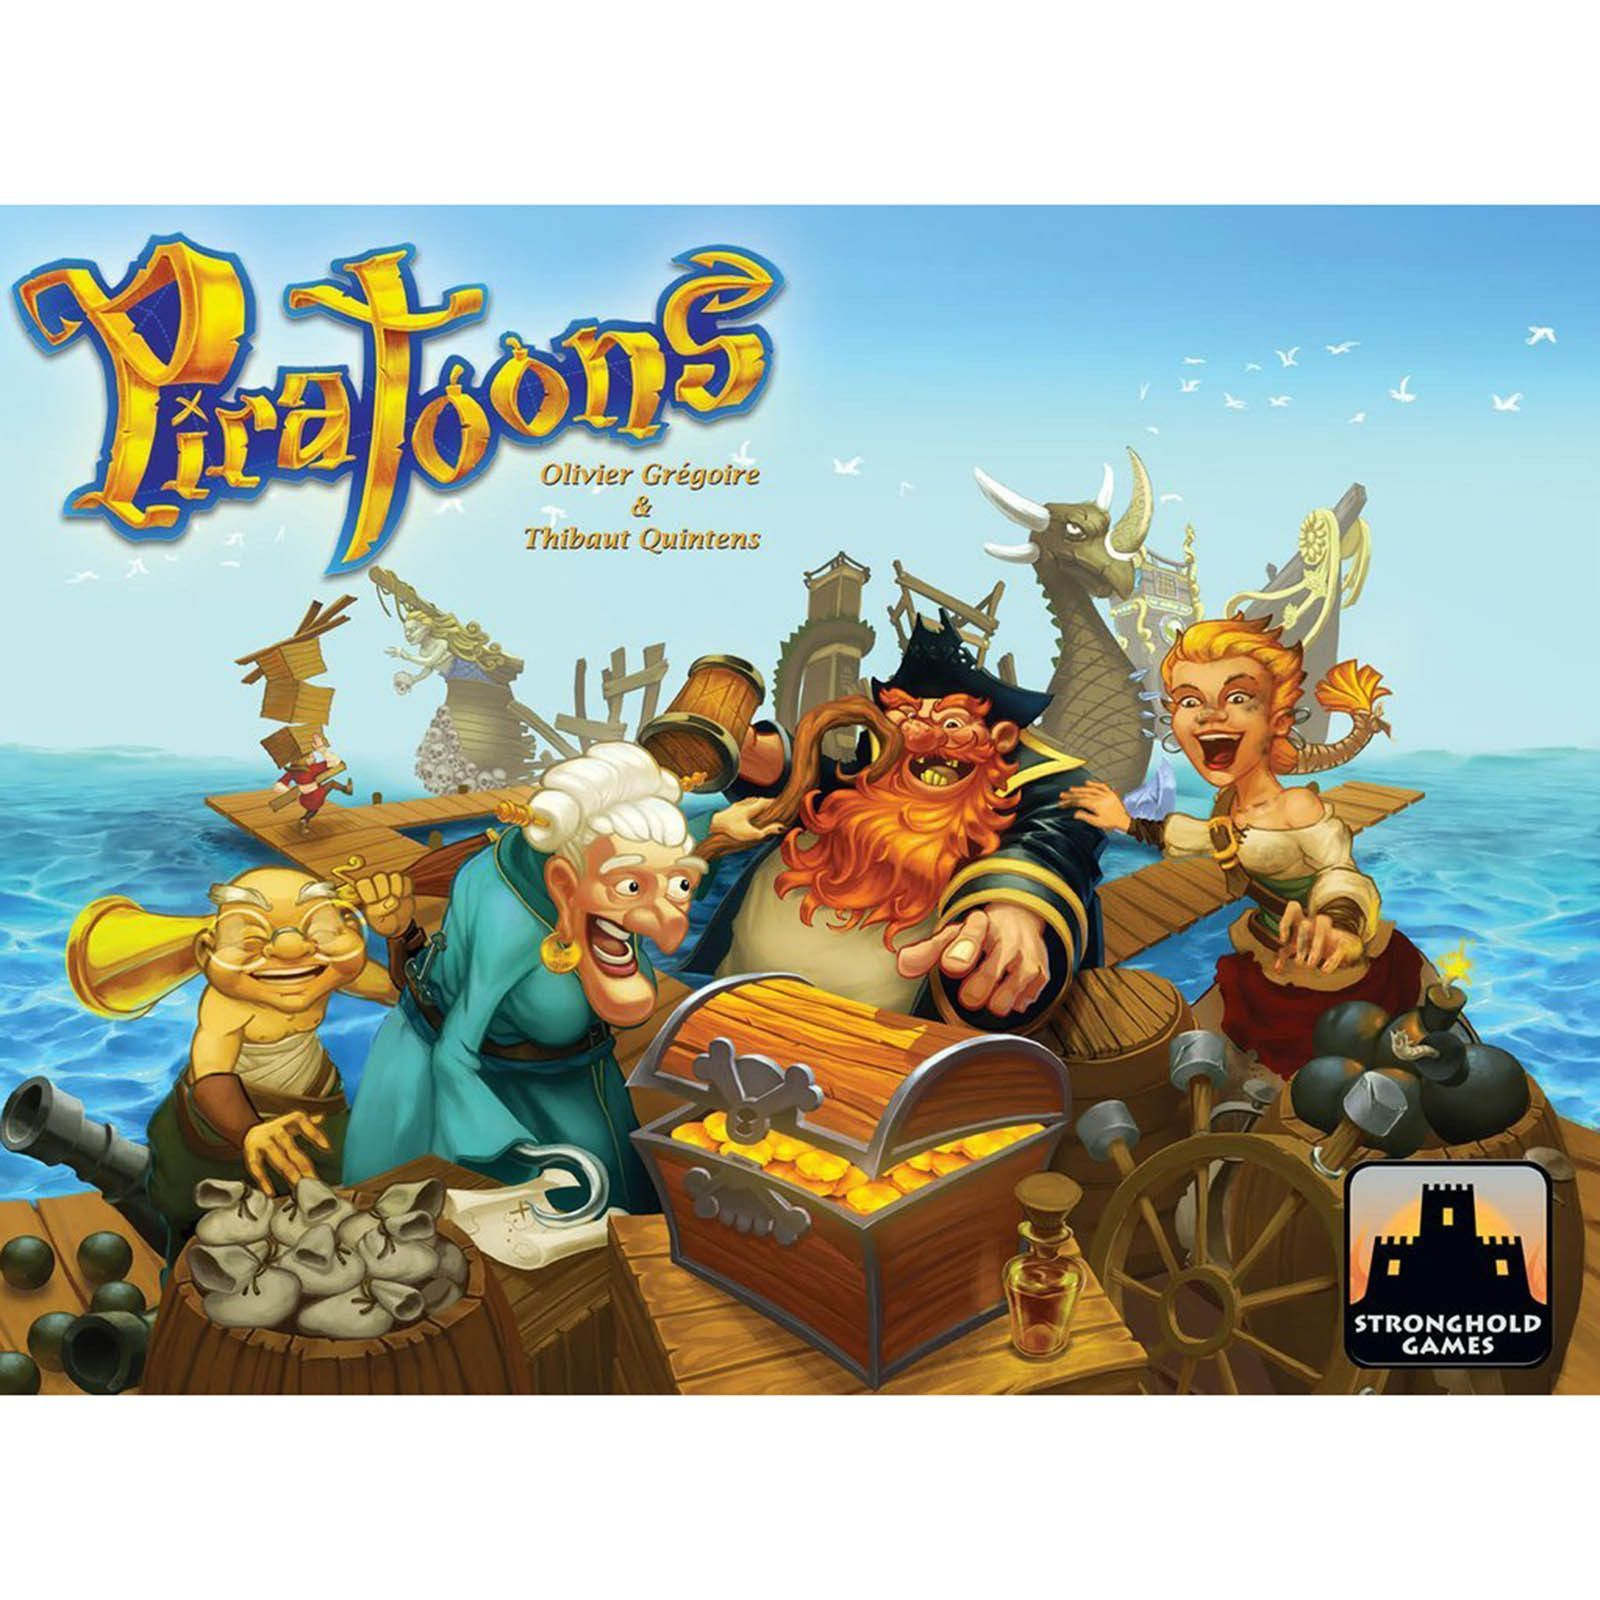 Piratoons The Board Game Board games, The end game, Pirates